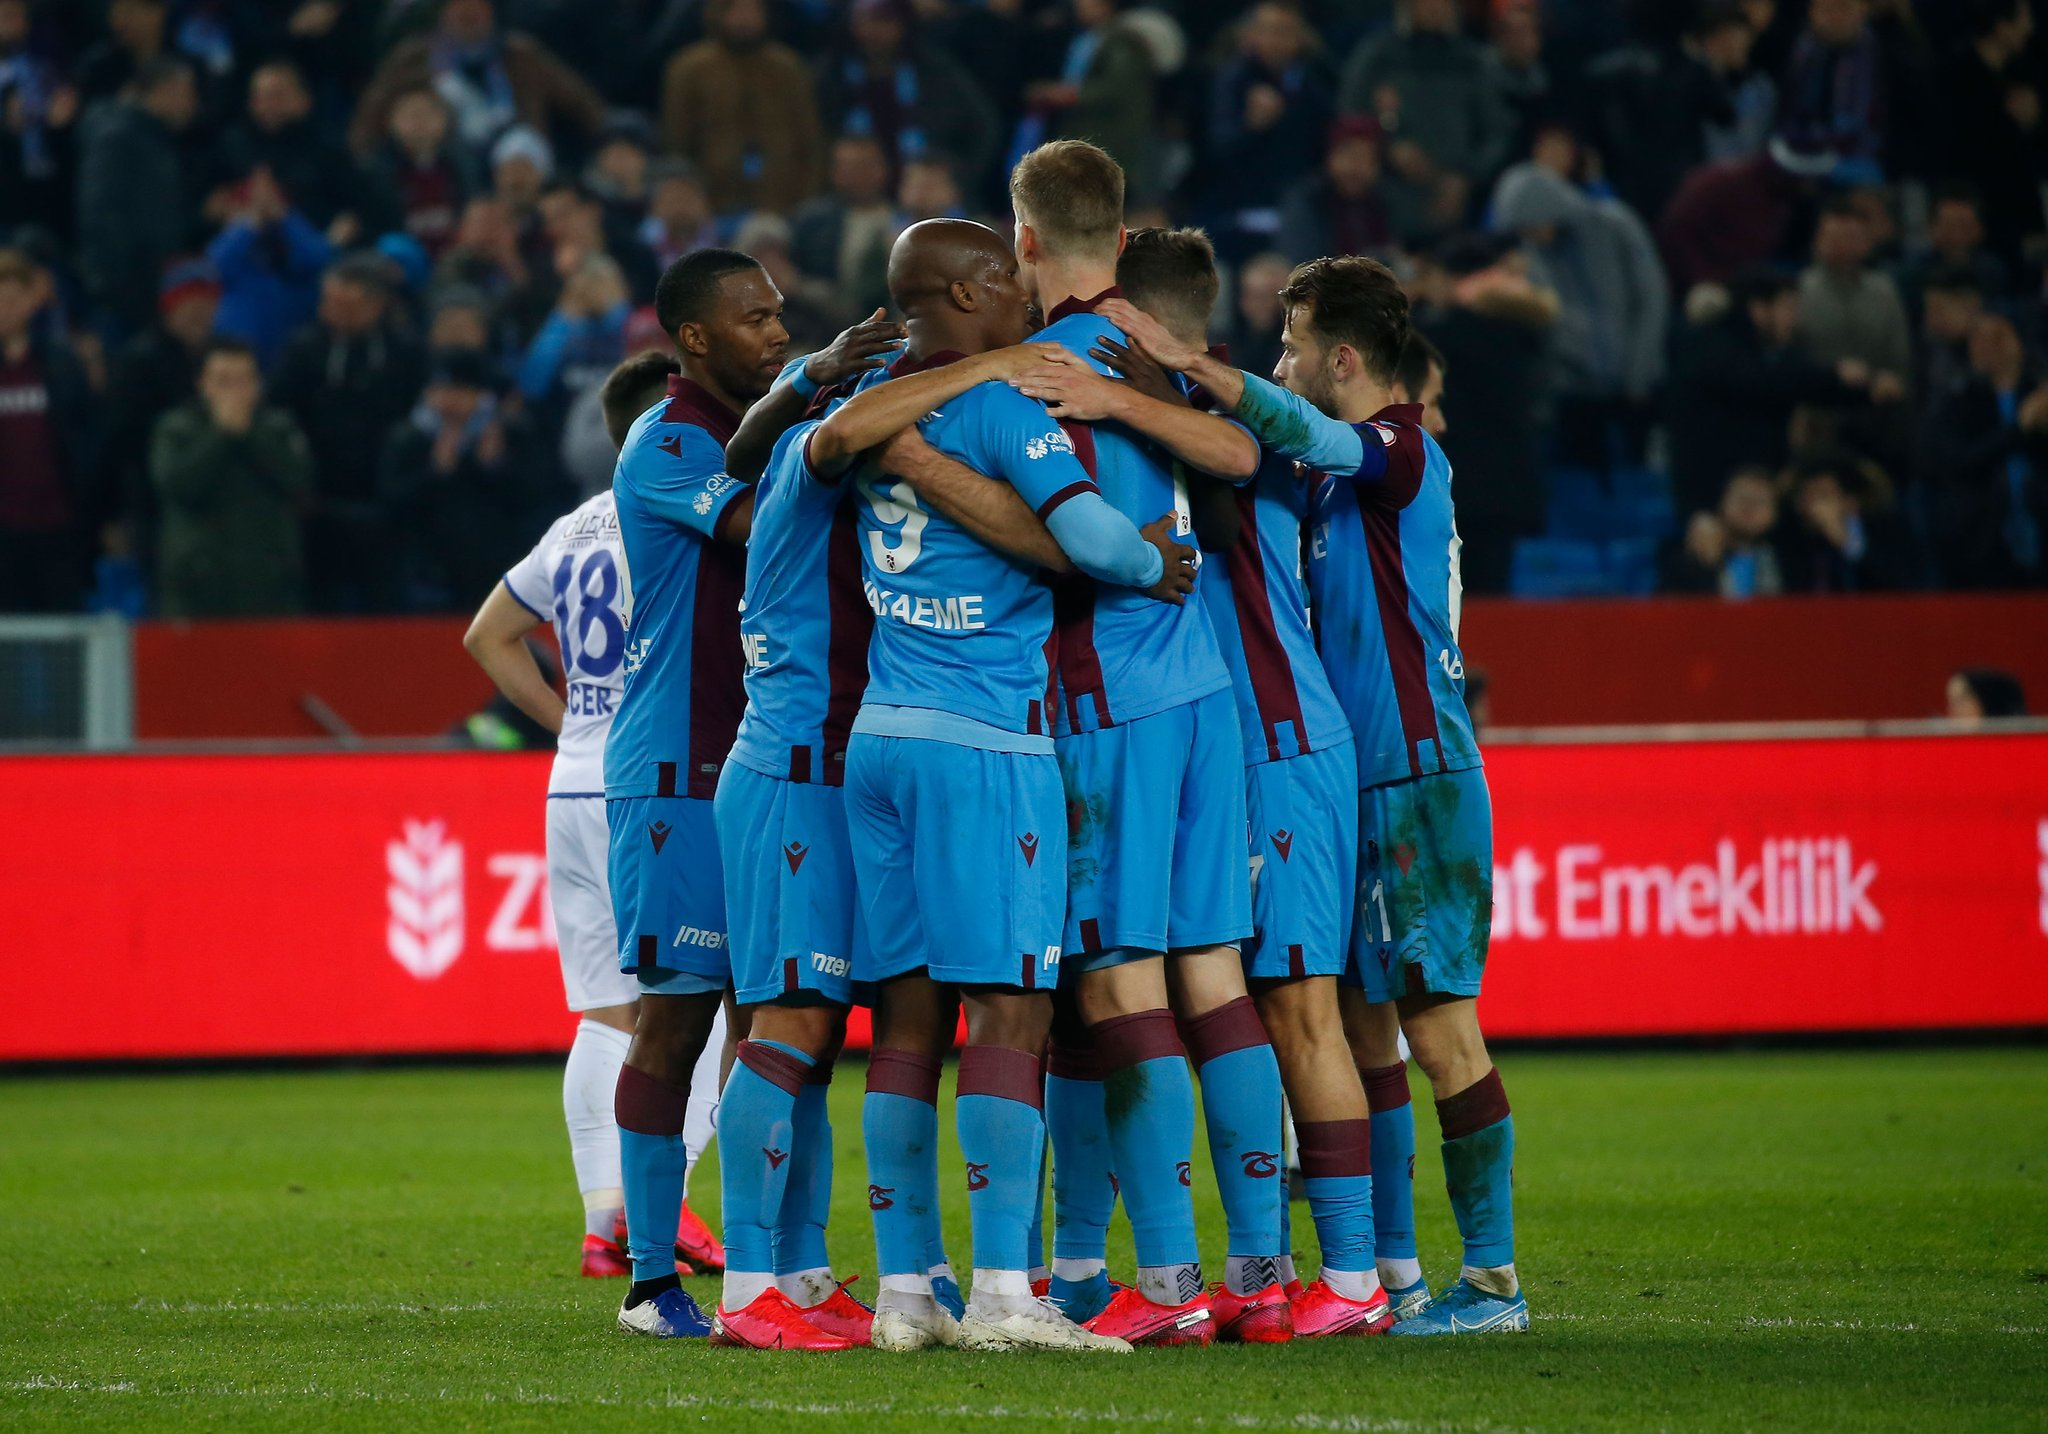 Nwakaeme On Target, Mikel Benched As Trabzonspor Secure Commanding Lead In Turkish Cup 1st-leg